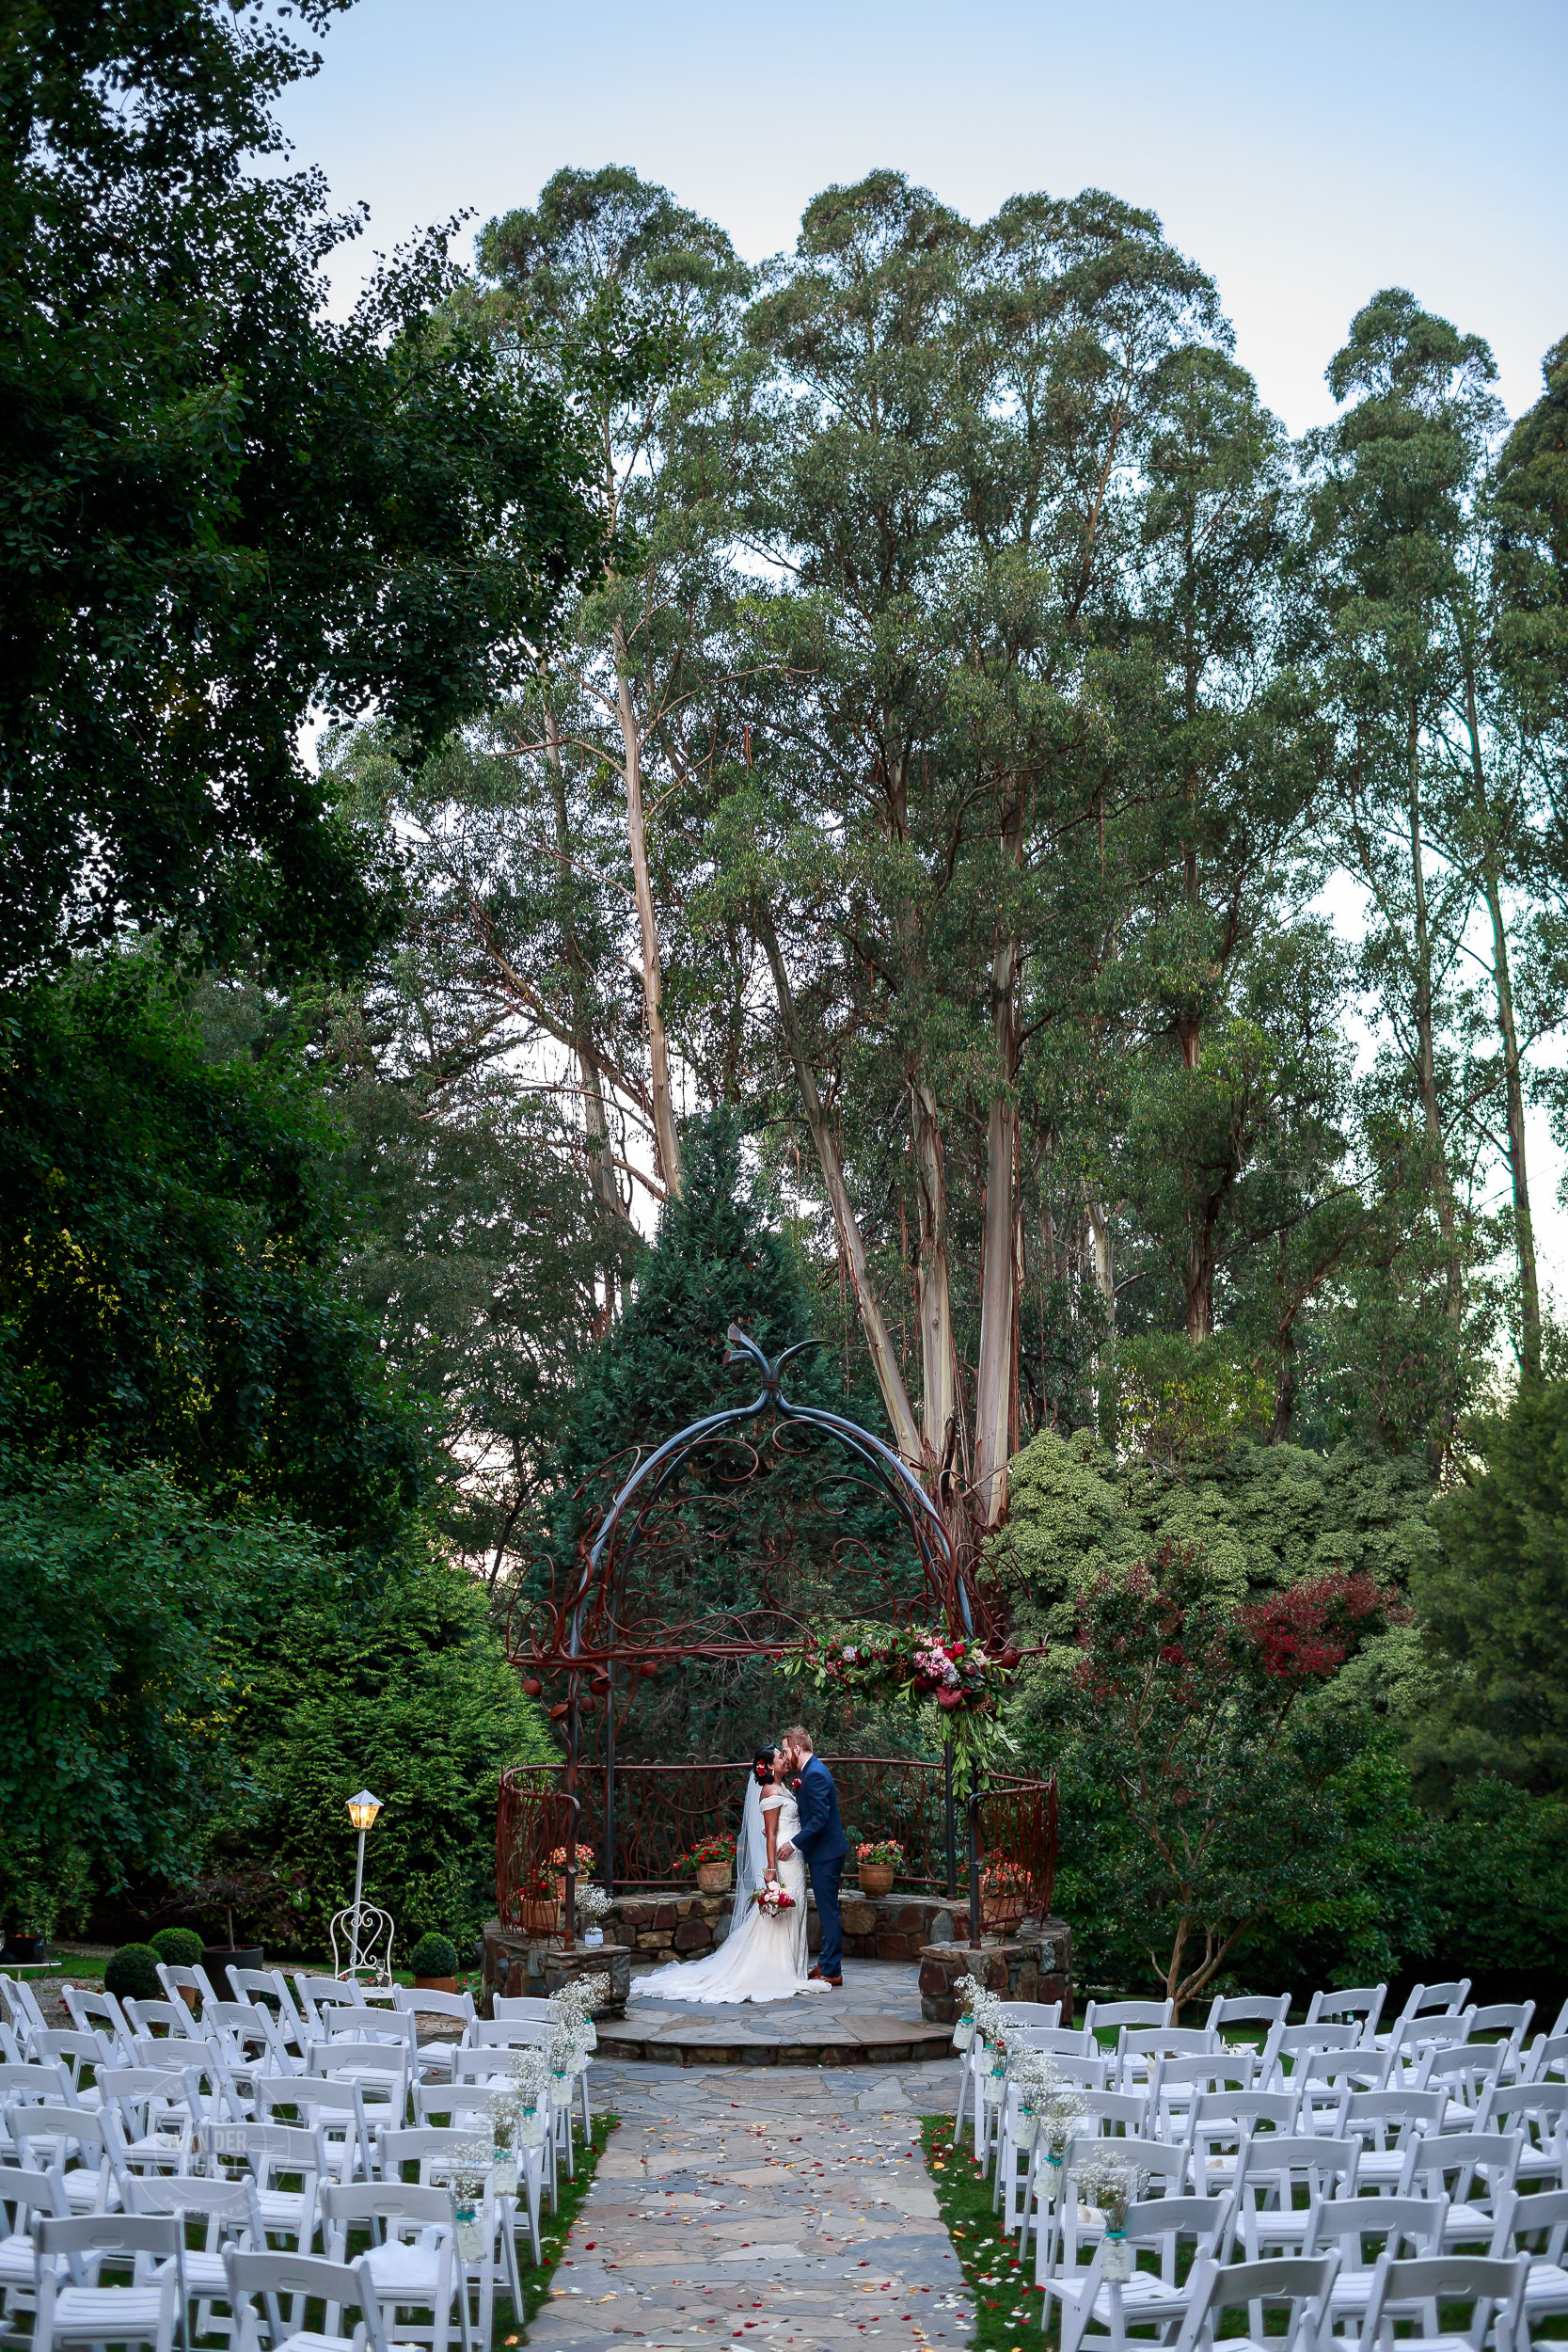 Melbourne-Wedding-Photographer-Tatra-1089.jpg